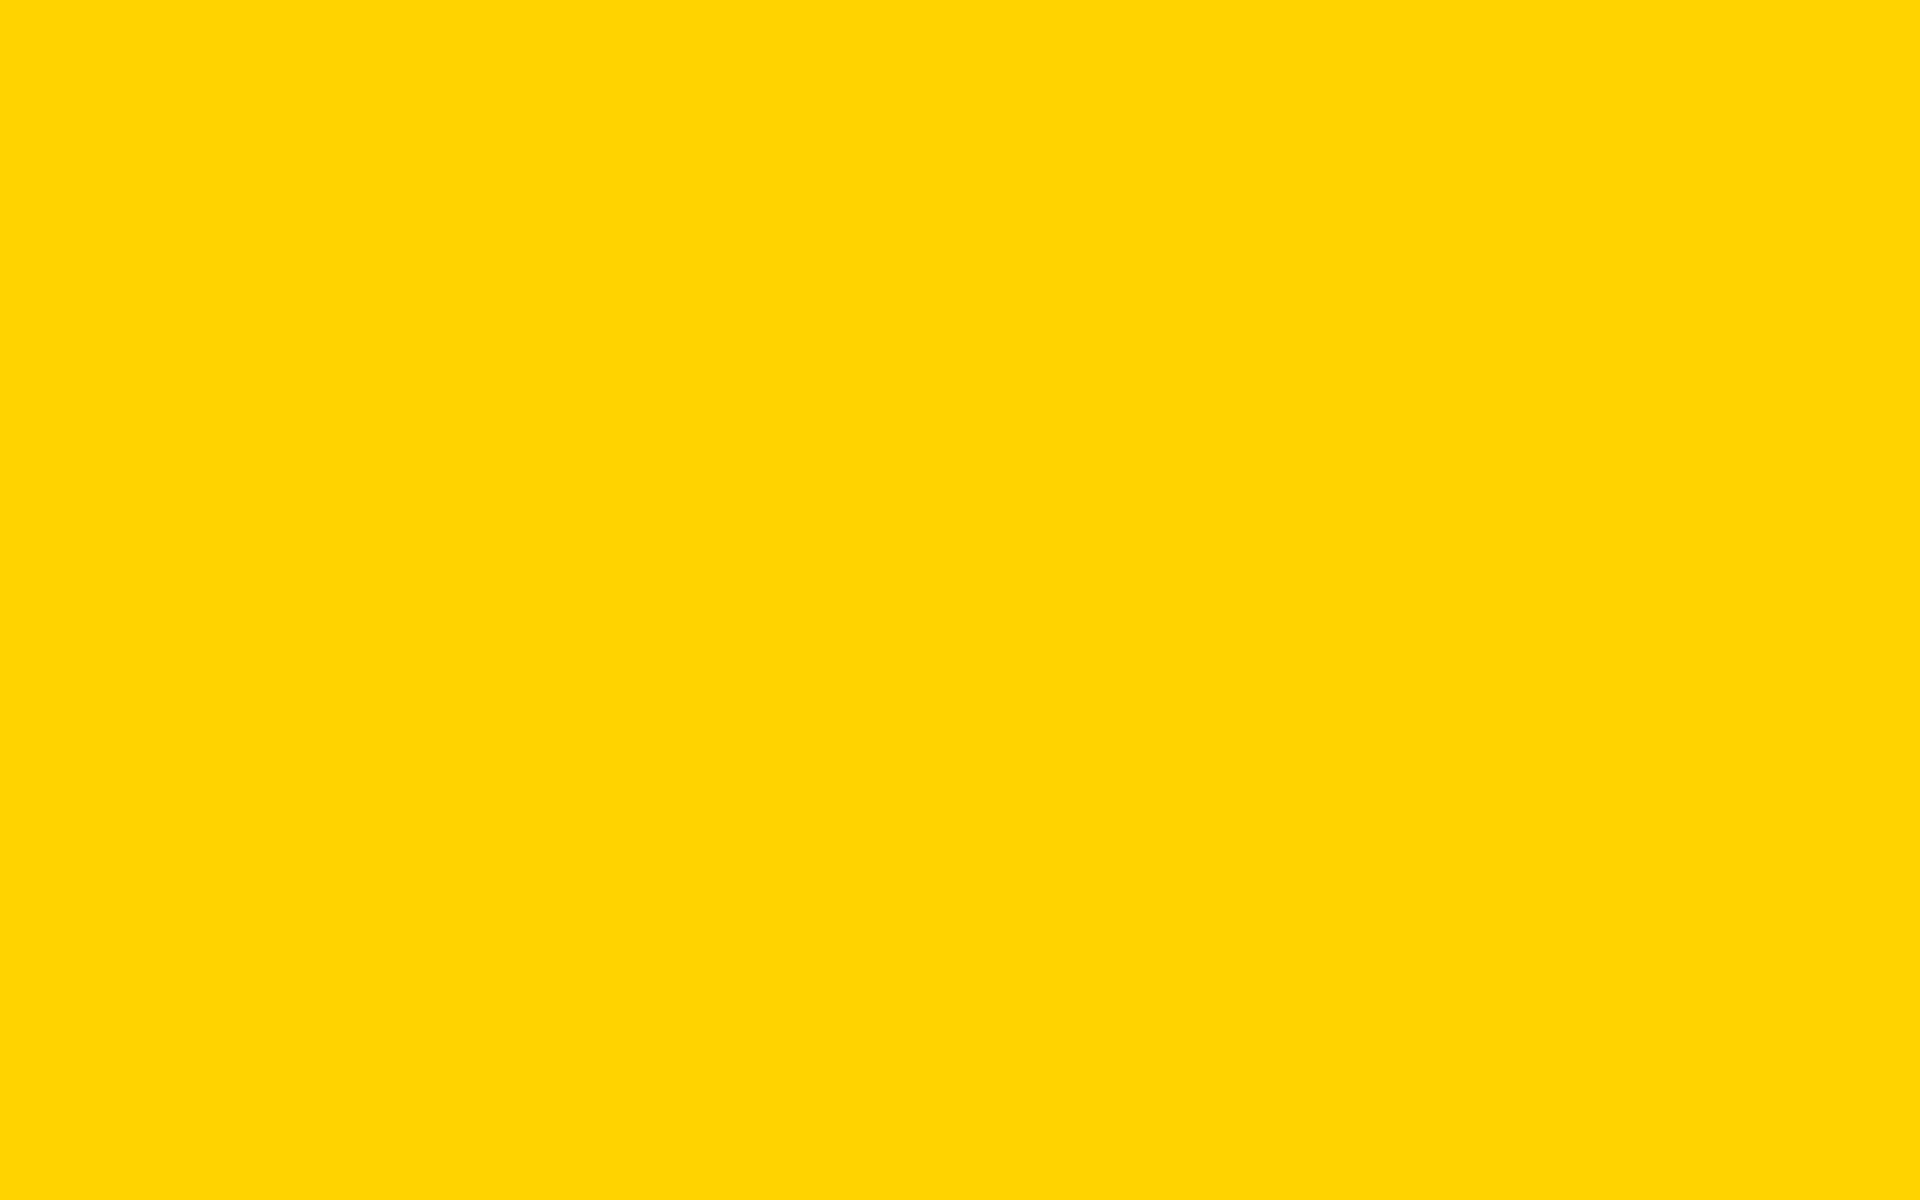 1920x1200 Yellow NCS Solid Color Background